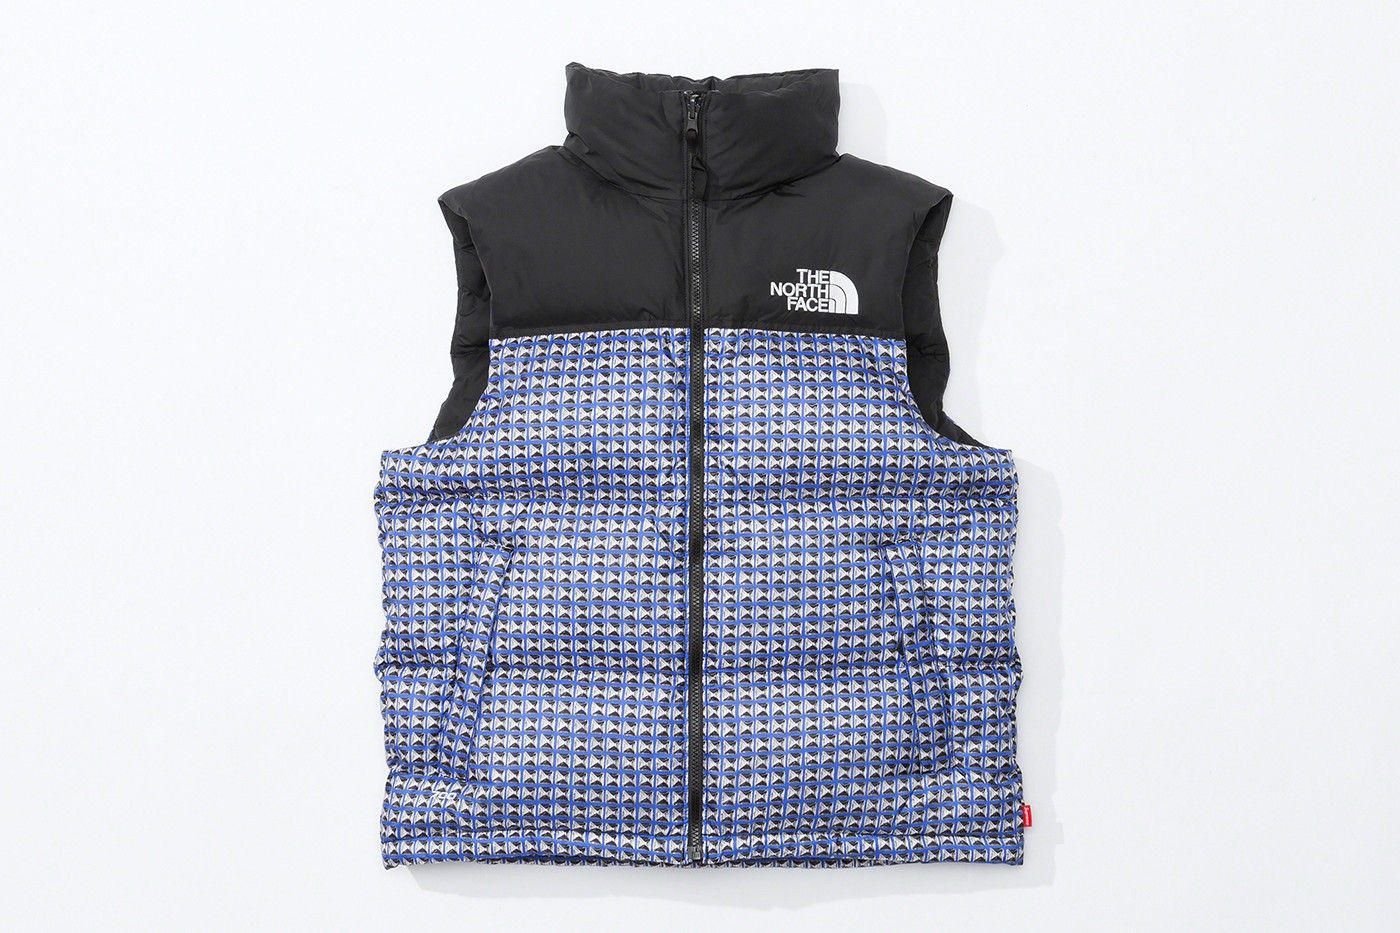 Your Supreme x TNF Camping Fit Just Got Another Level Up 46